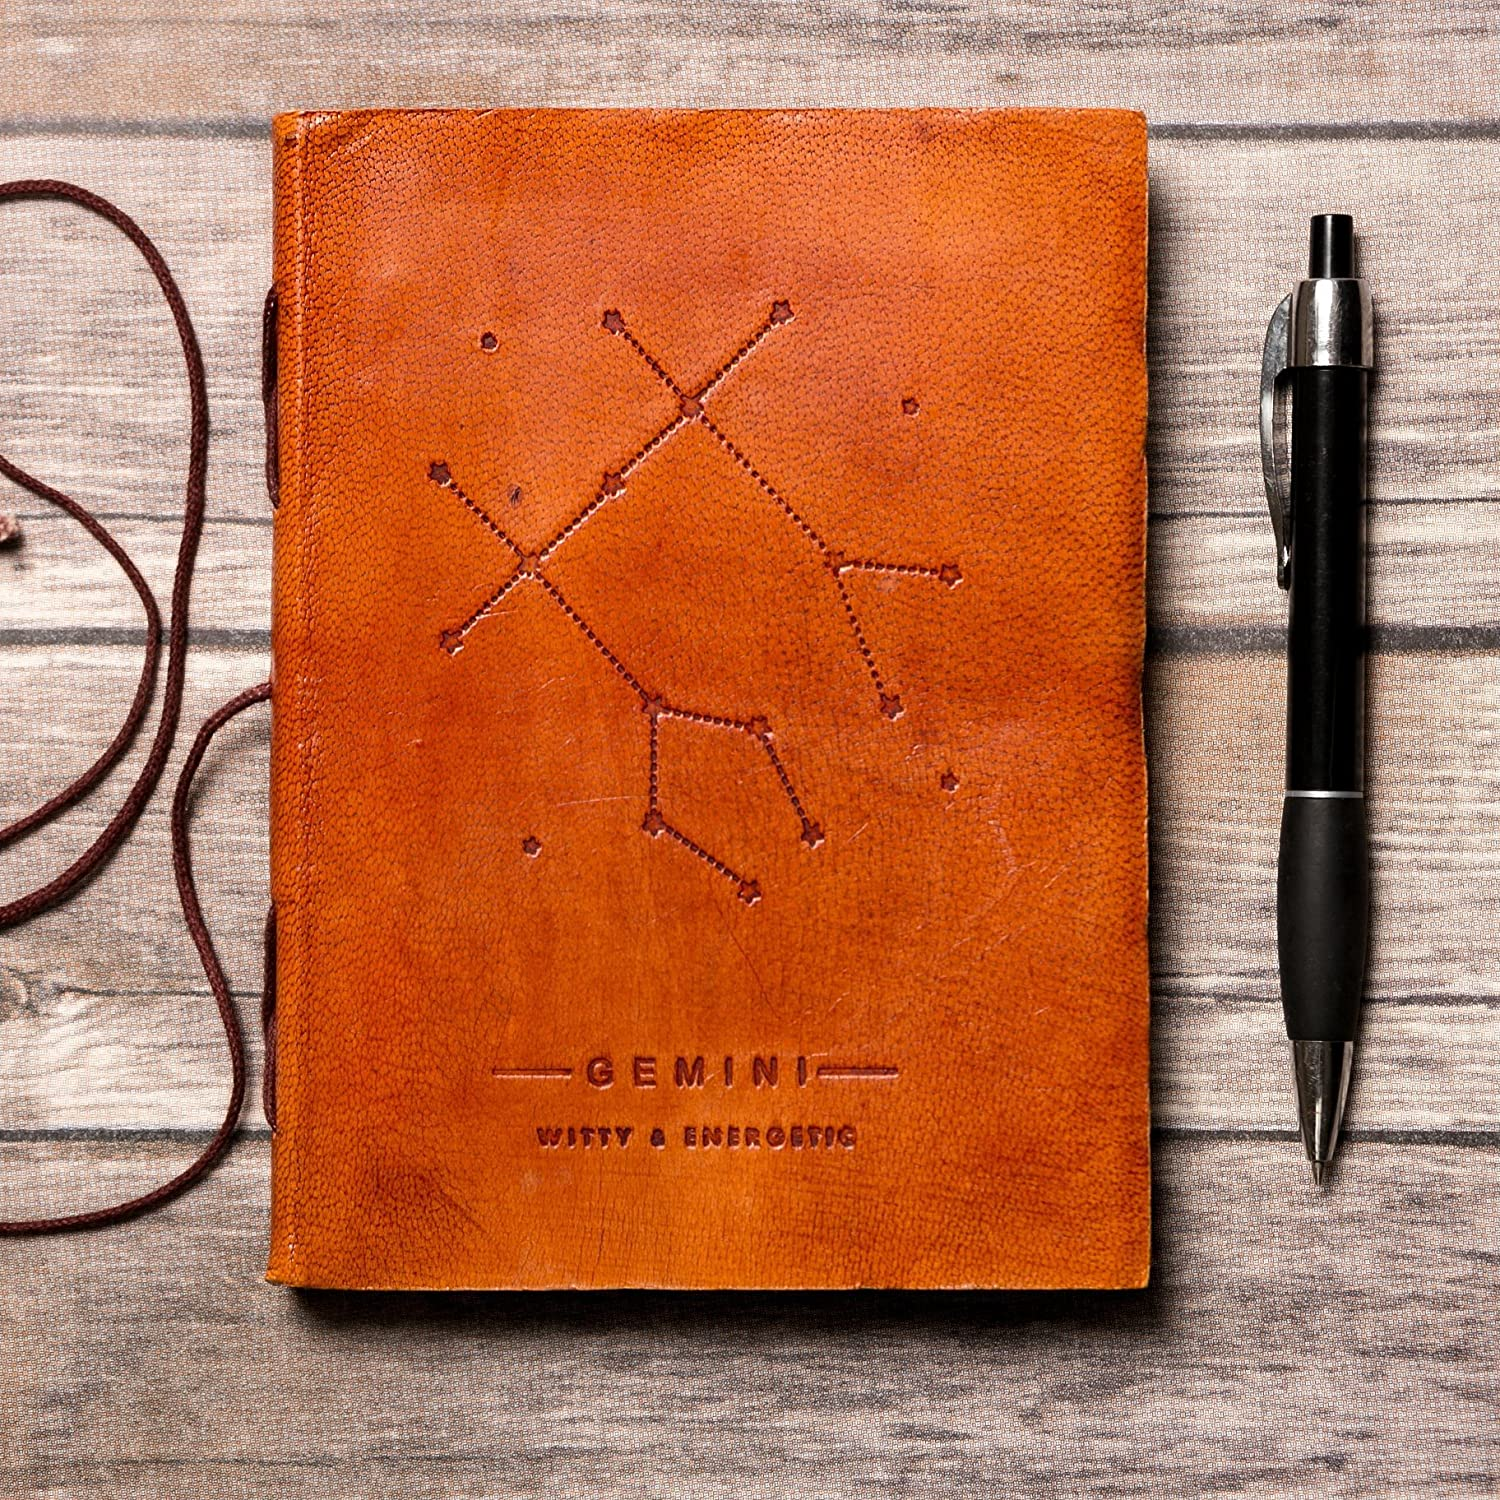 Gemini Leather Journal / Zodiac Handmade Journal / Astrology Journal / Horoscope Journal / Gifts for Him / Travel Journal / Sketchbook / Embossed Genuine Leather Journal / Your Personal Bound Notebook